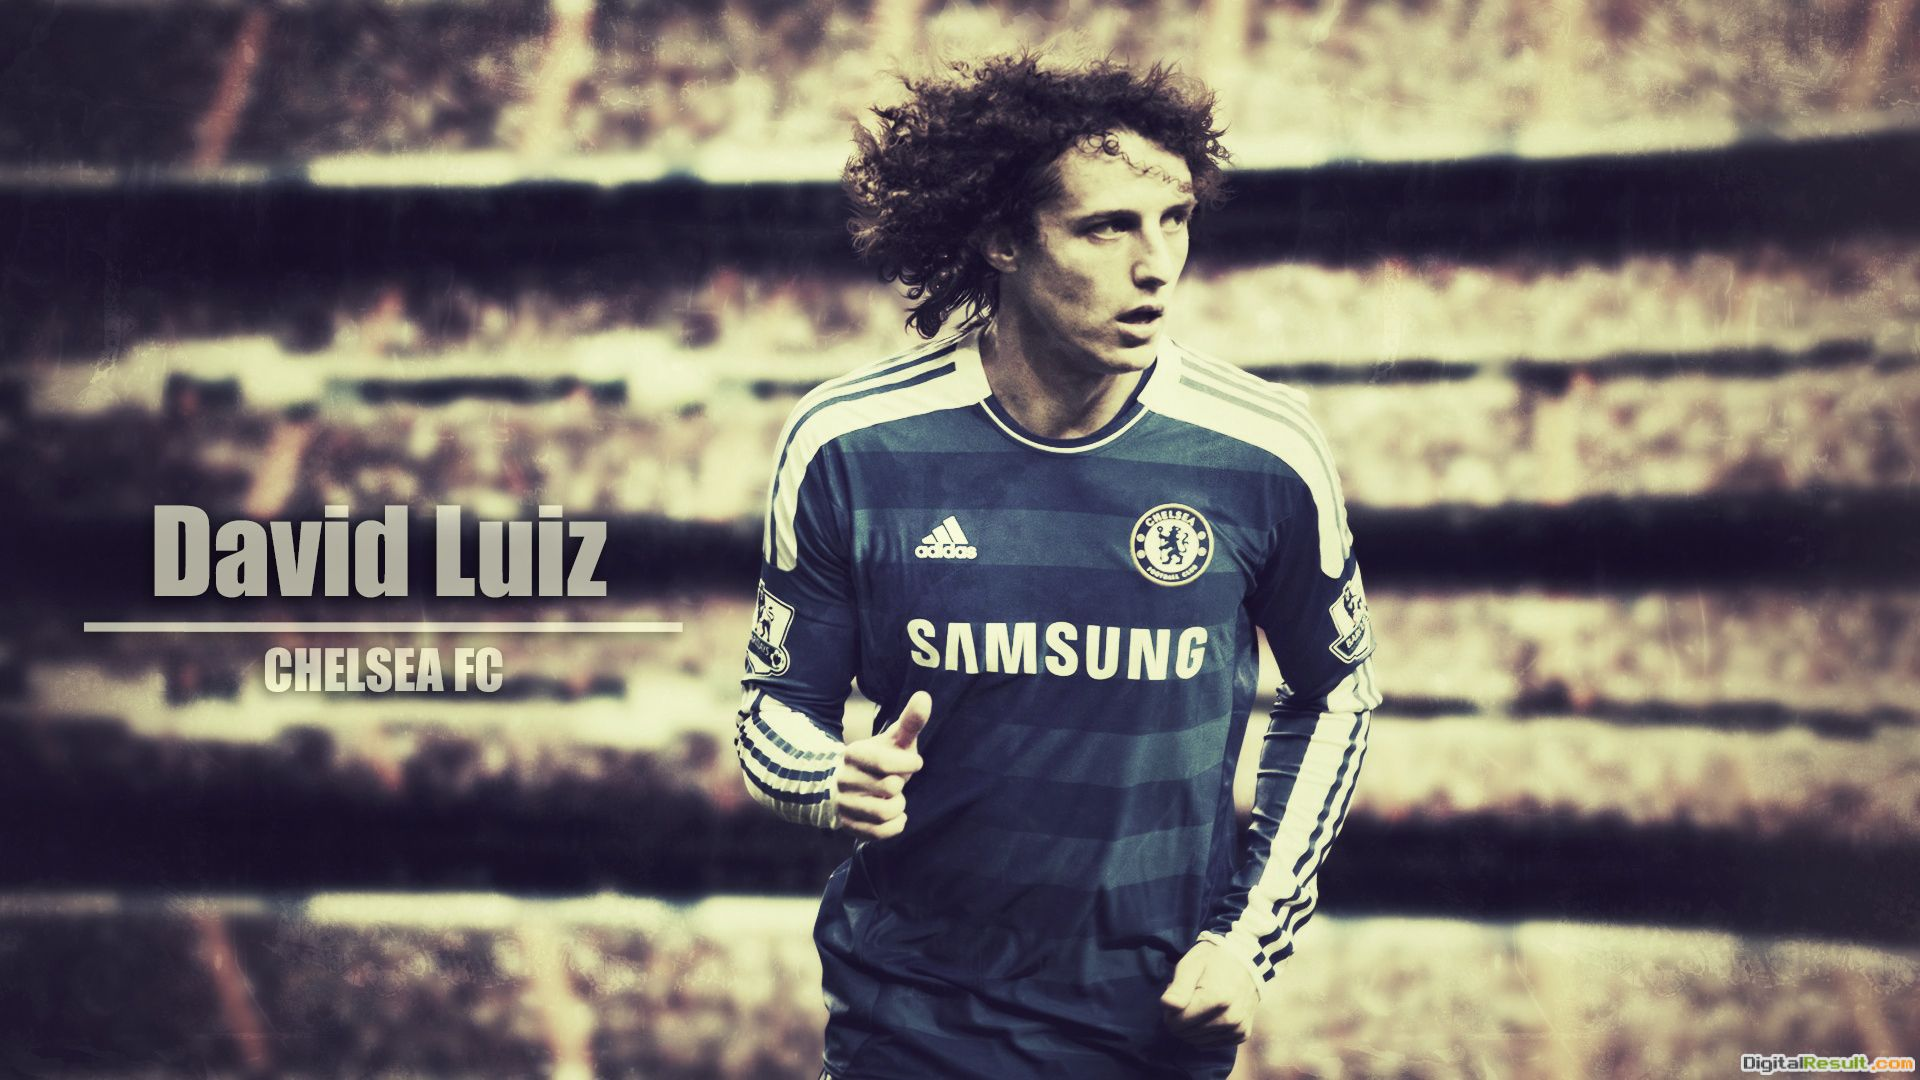 david luiz chelsea wallpaper 2014 | Desktop Backgrounds for Free HD 1503